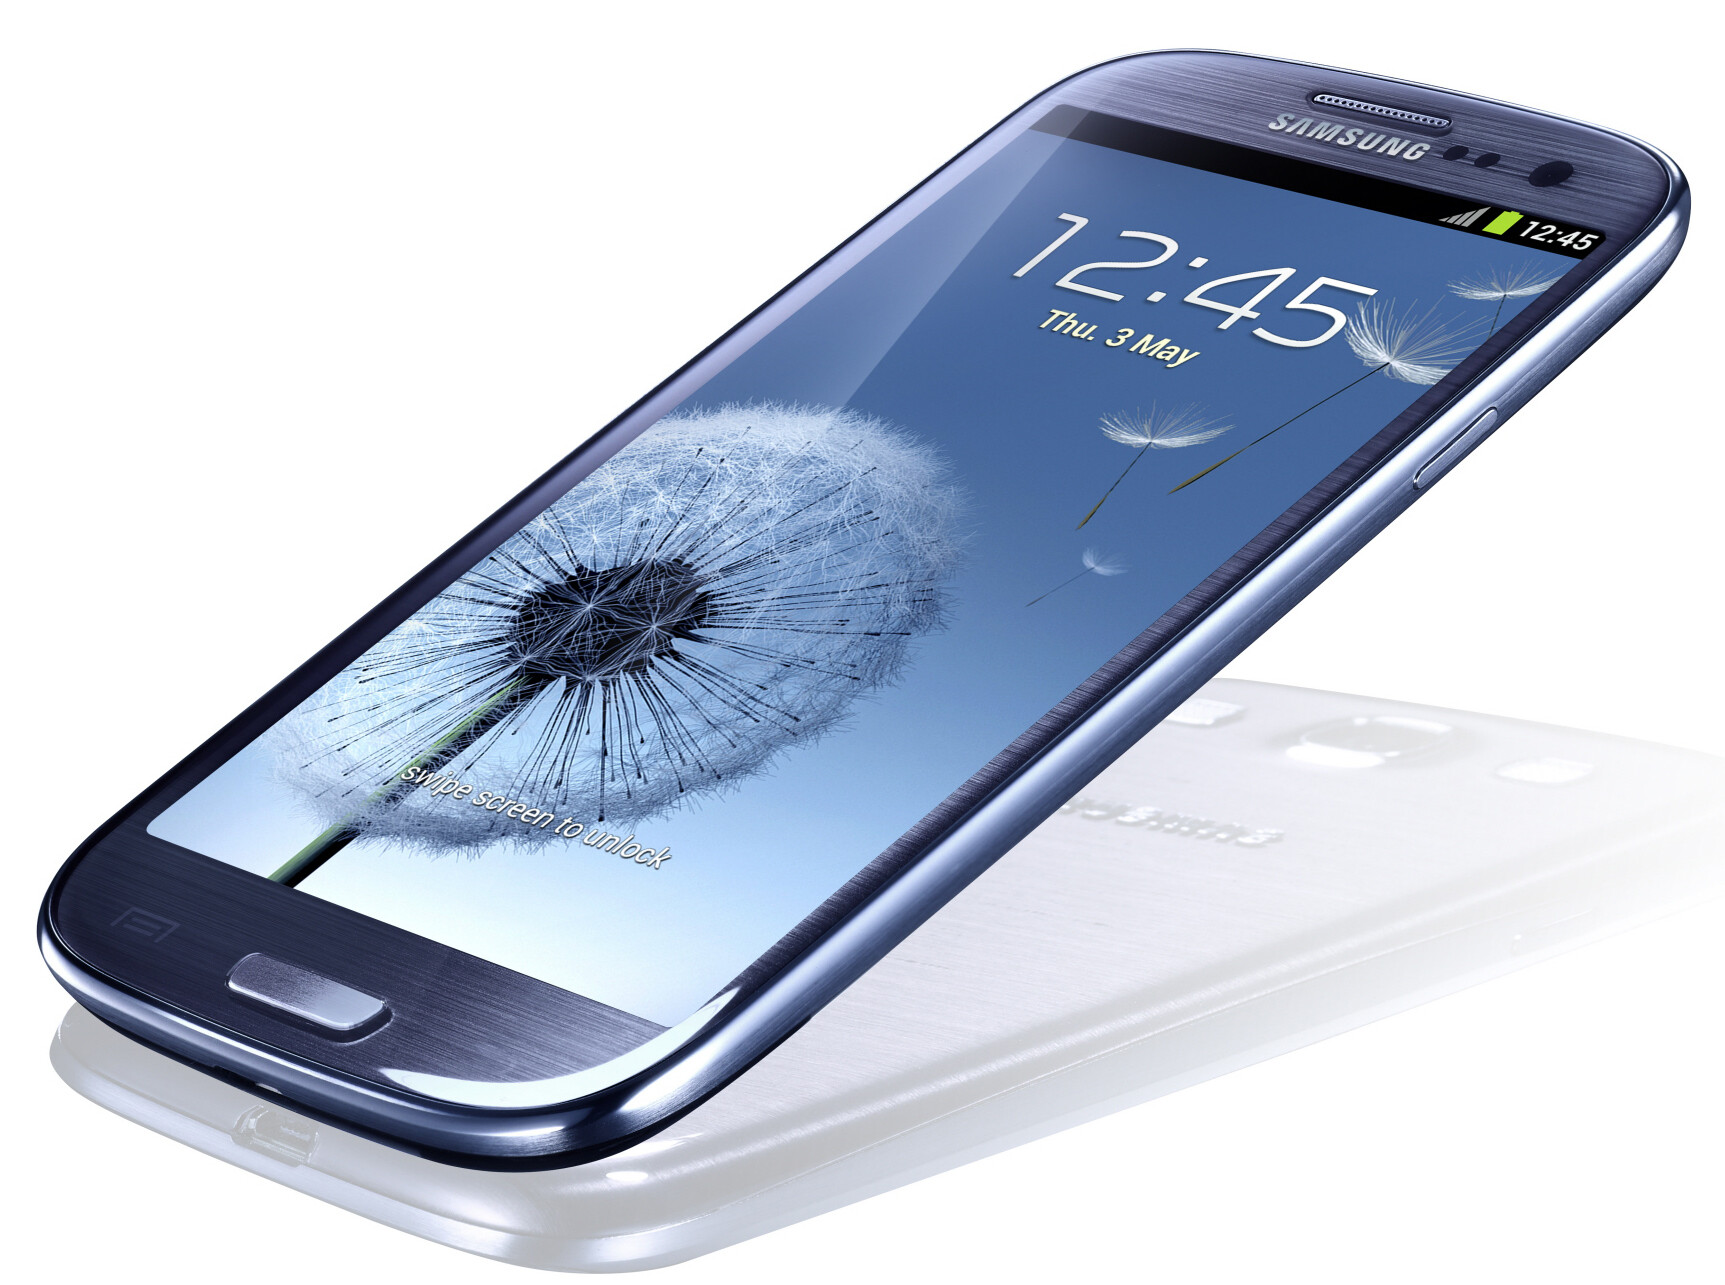 samsung galaxy s iii t mobile specs. Black Bedroom Furniture Sets. Home Design Ideas